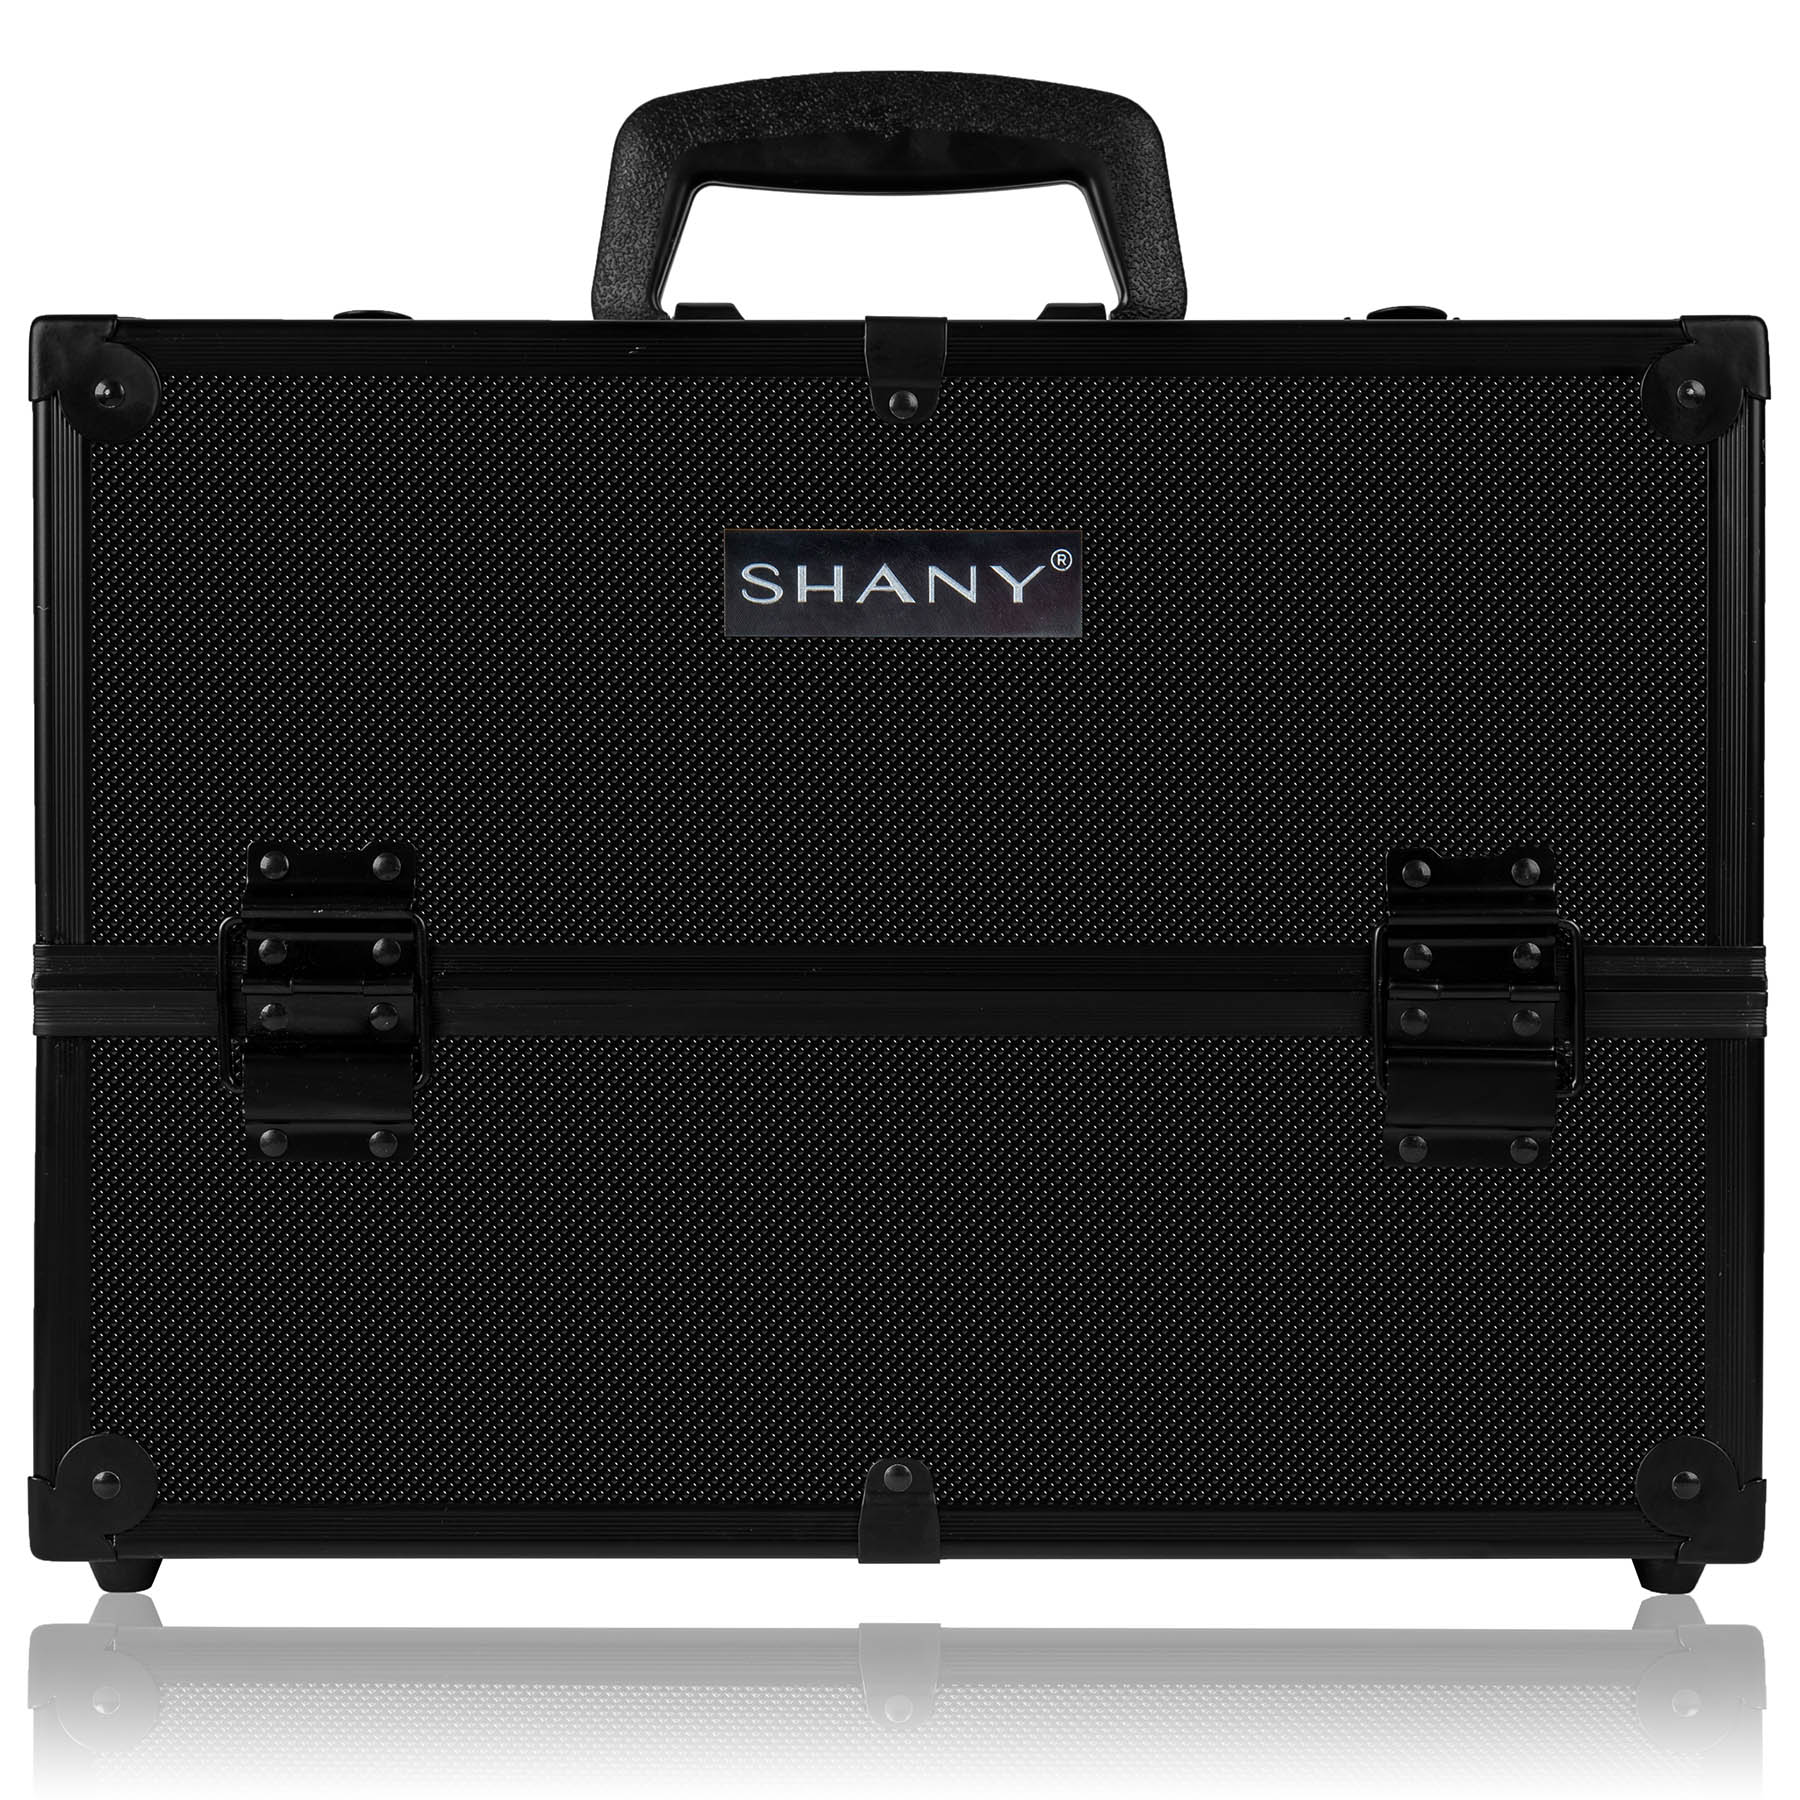 SHANY Essential Pro Makeup Train Case with Shoulder Strap an